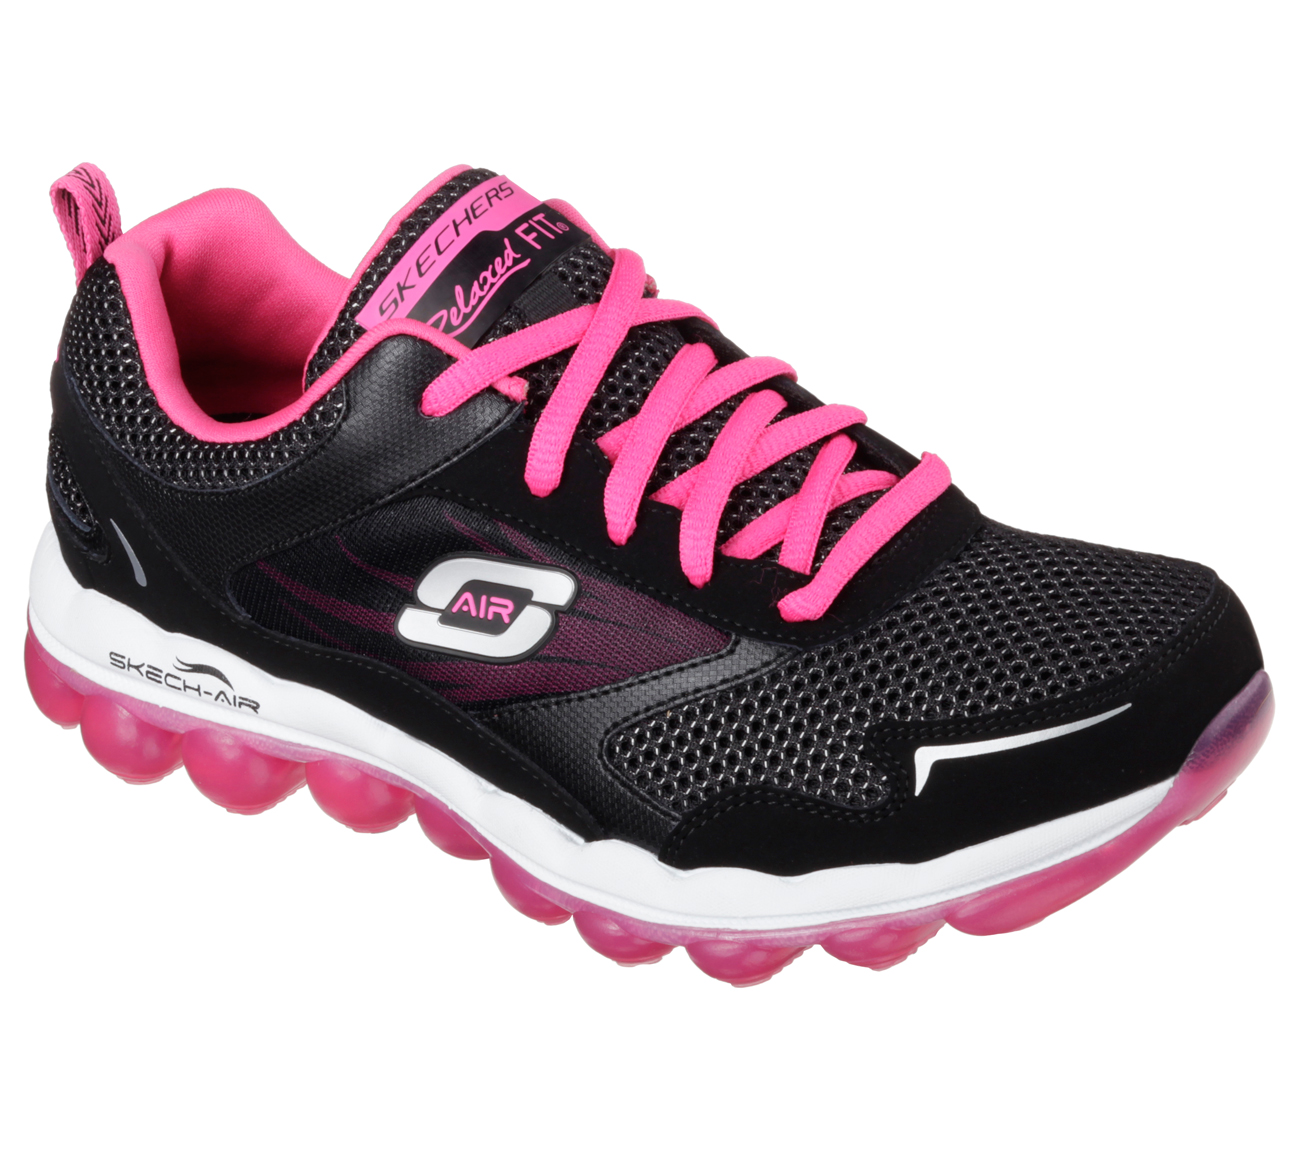 Sketchers Wide Fit Kids Shoes